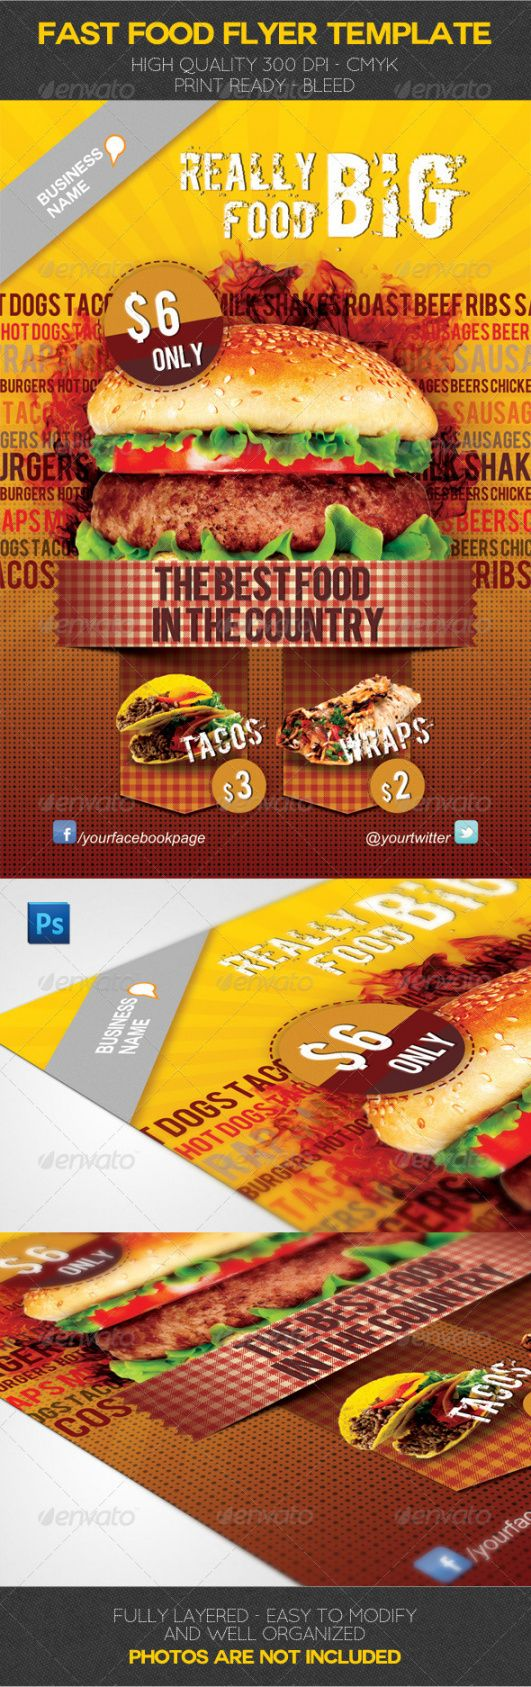 free 12 food flyer templates images  food bank flyer templates food pantry flyer template pdf